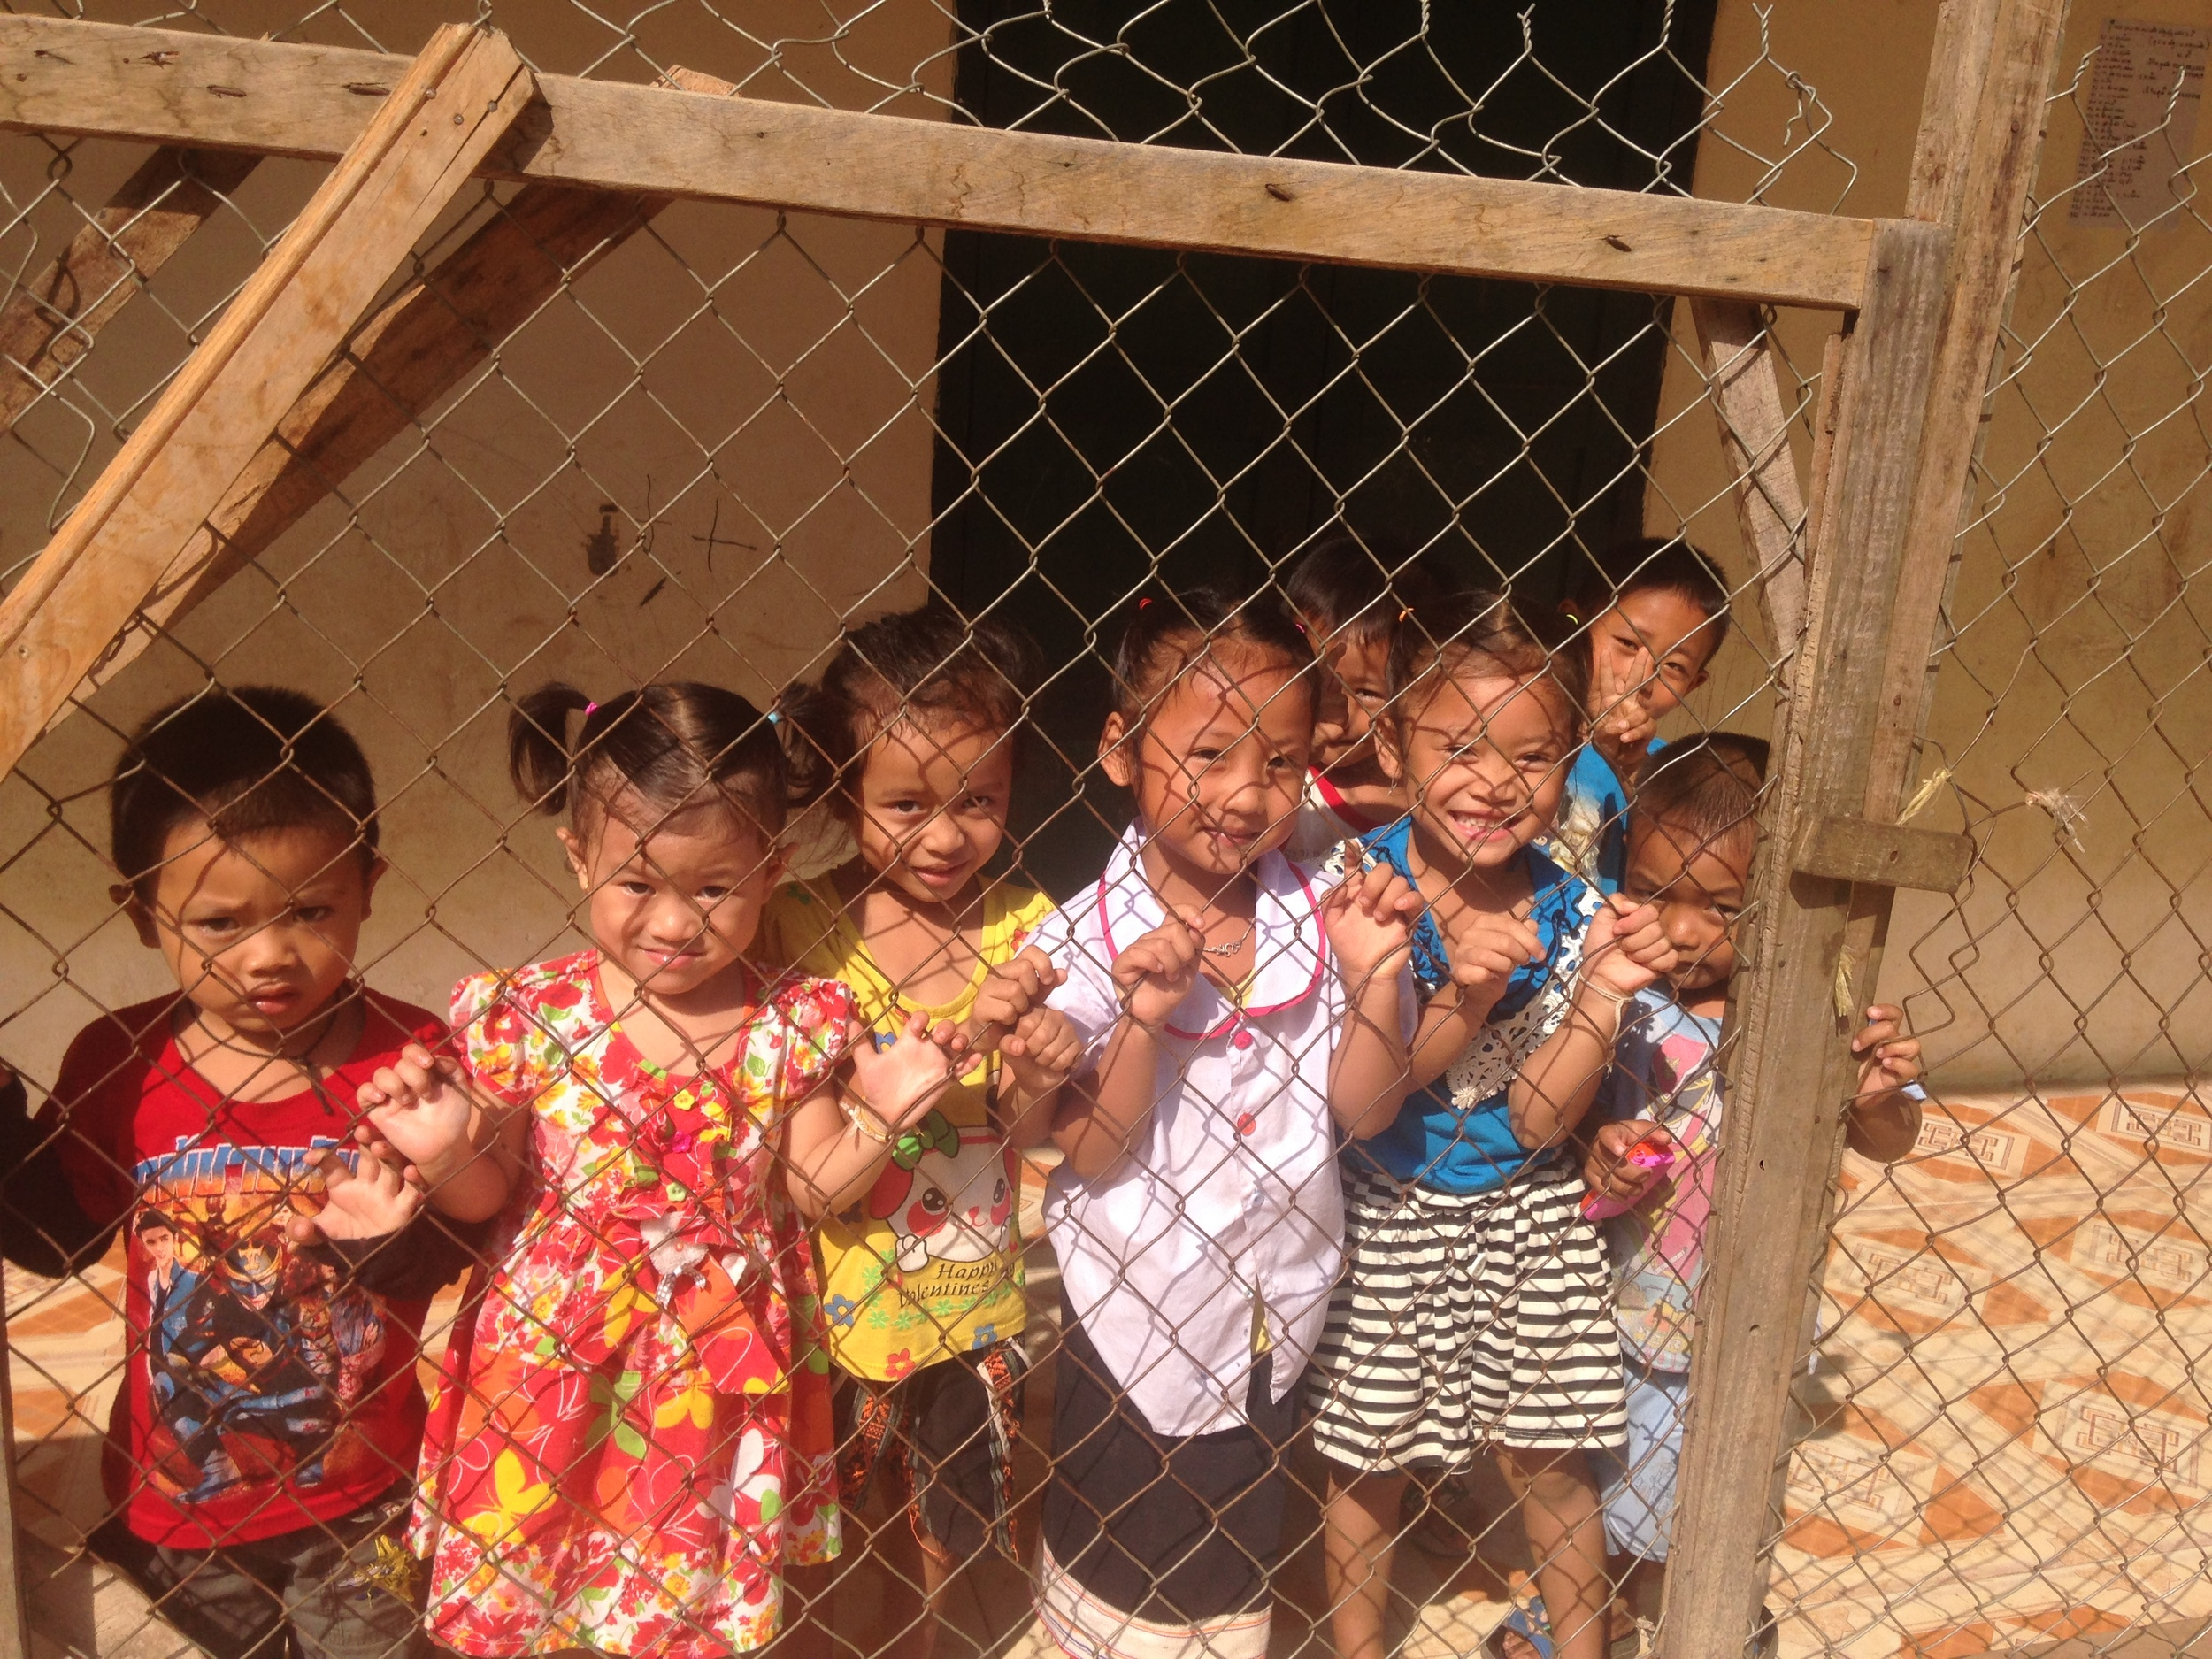 Children at a school or daycare in Muang Khua